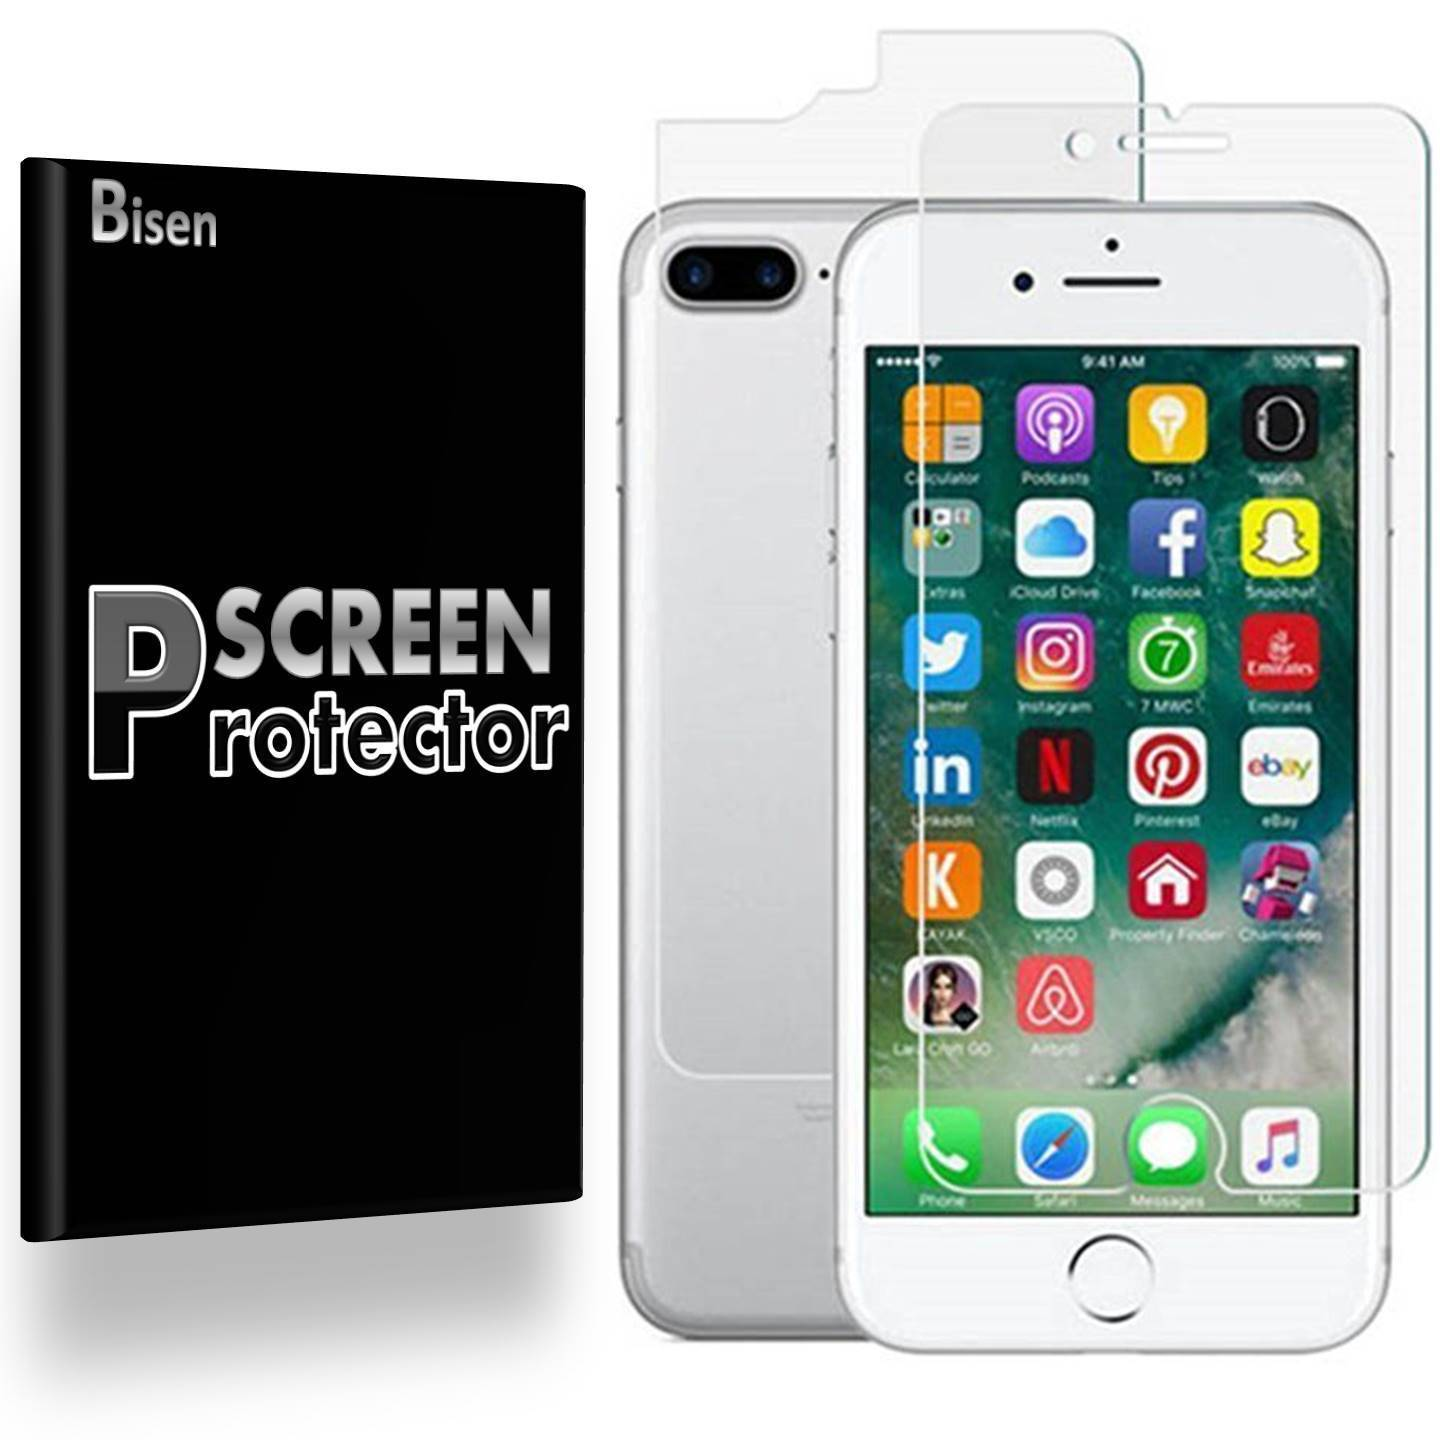 iPhone 8 Plus [BISEN] Tempered Glass FULL BODY [Front + Rear] Screen Protector, Anti-Scratch, Anti-Shock, Shatterproof, Bubble Free